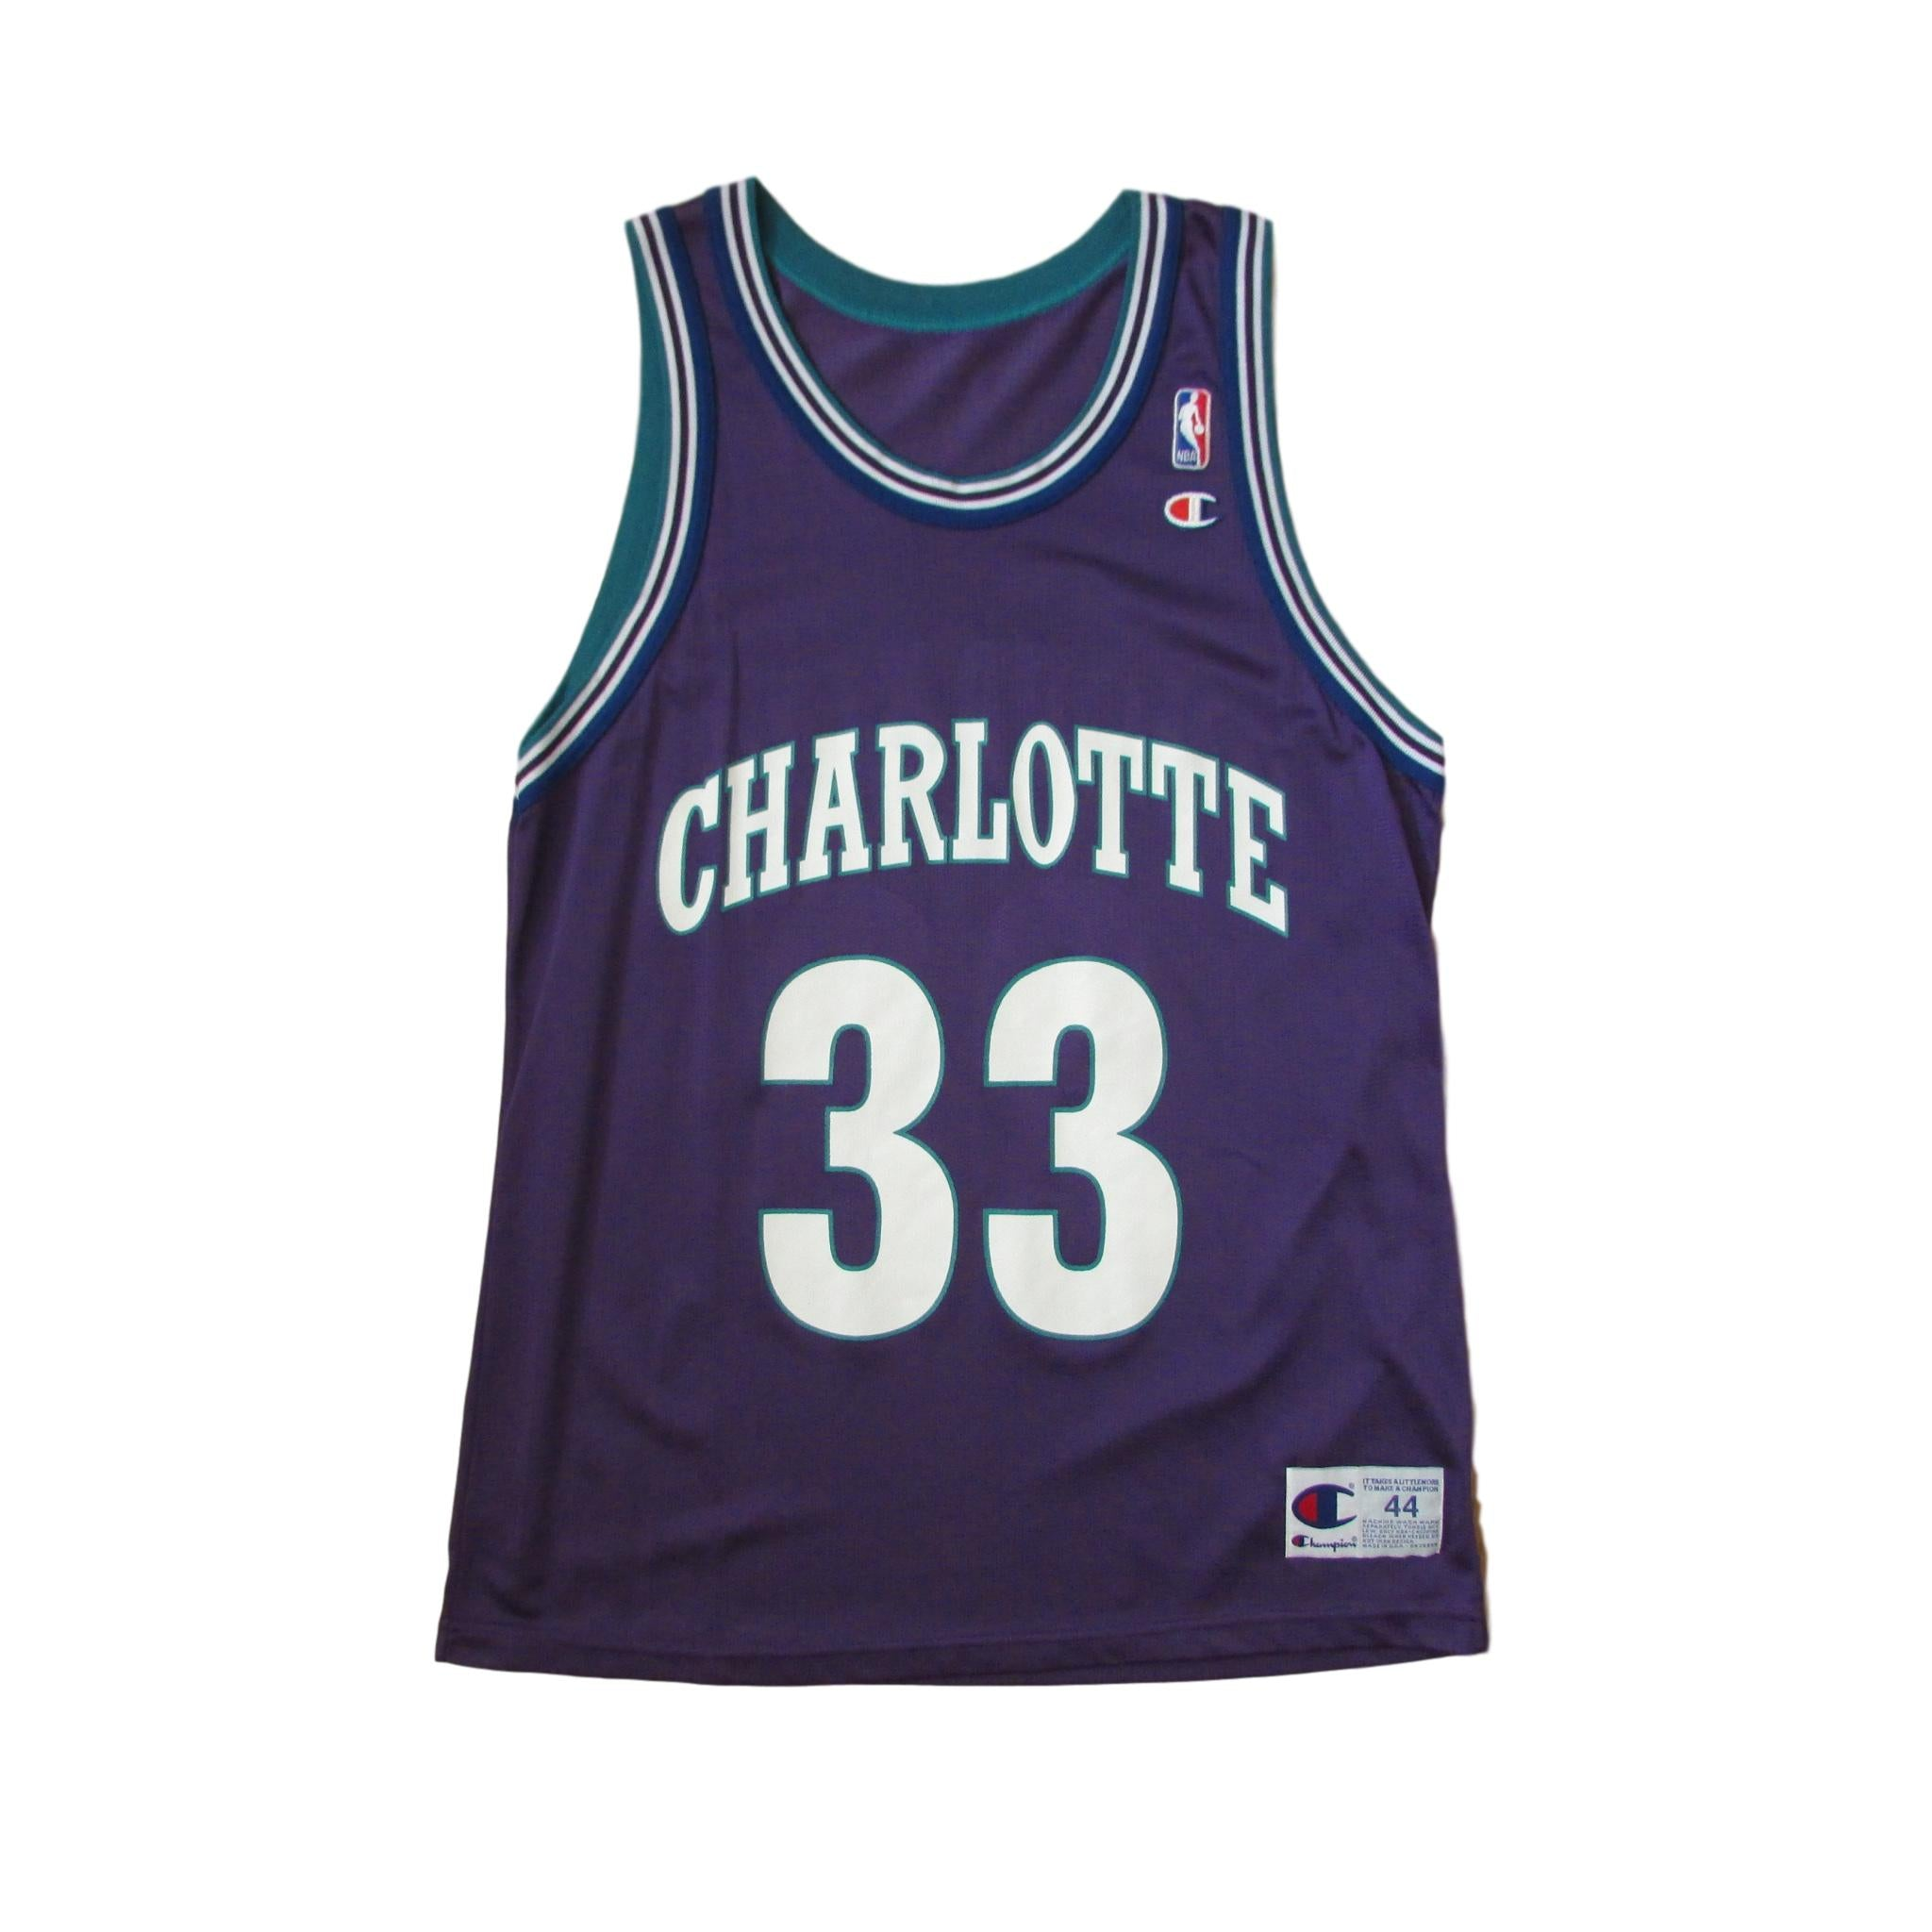 new style c79d1 f0ee9 sale charlotte hornets jersey retro a9db7 a0e11